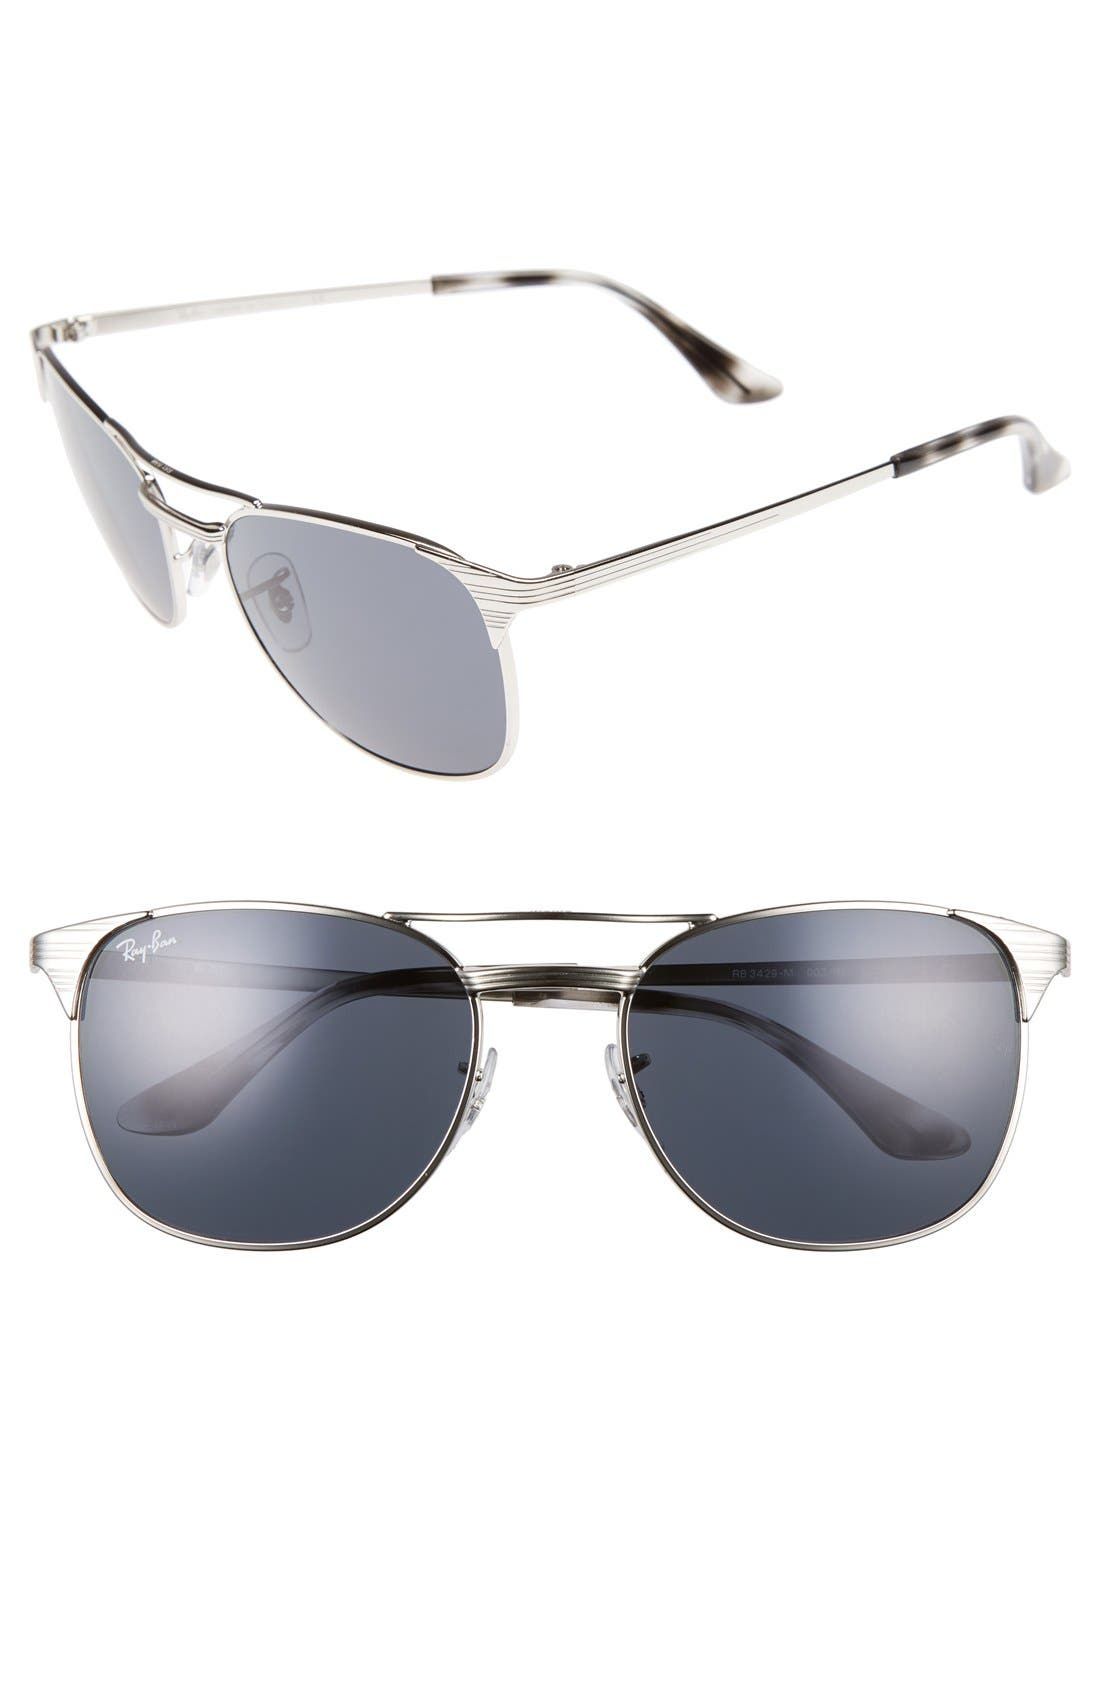 Ray-Ban Standard Icons Signet 55mm Retro Sunglasses